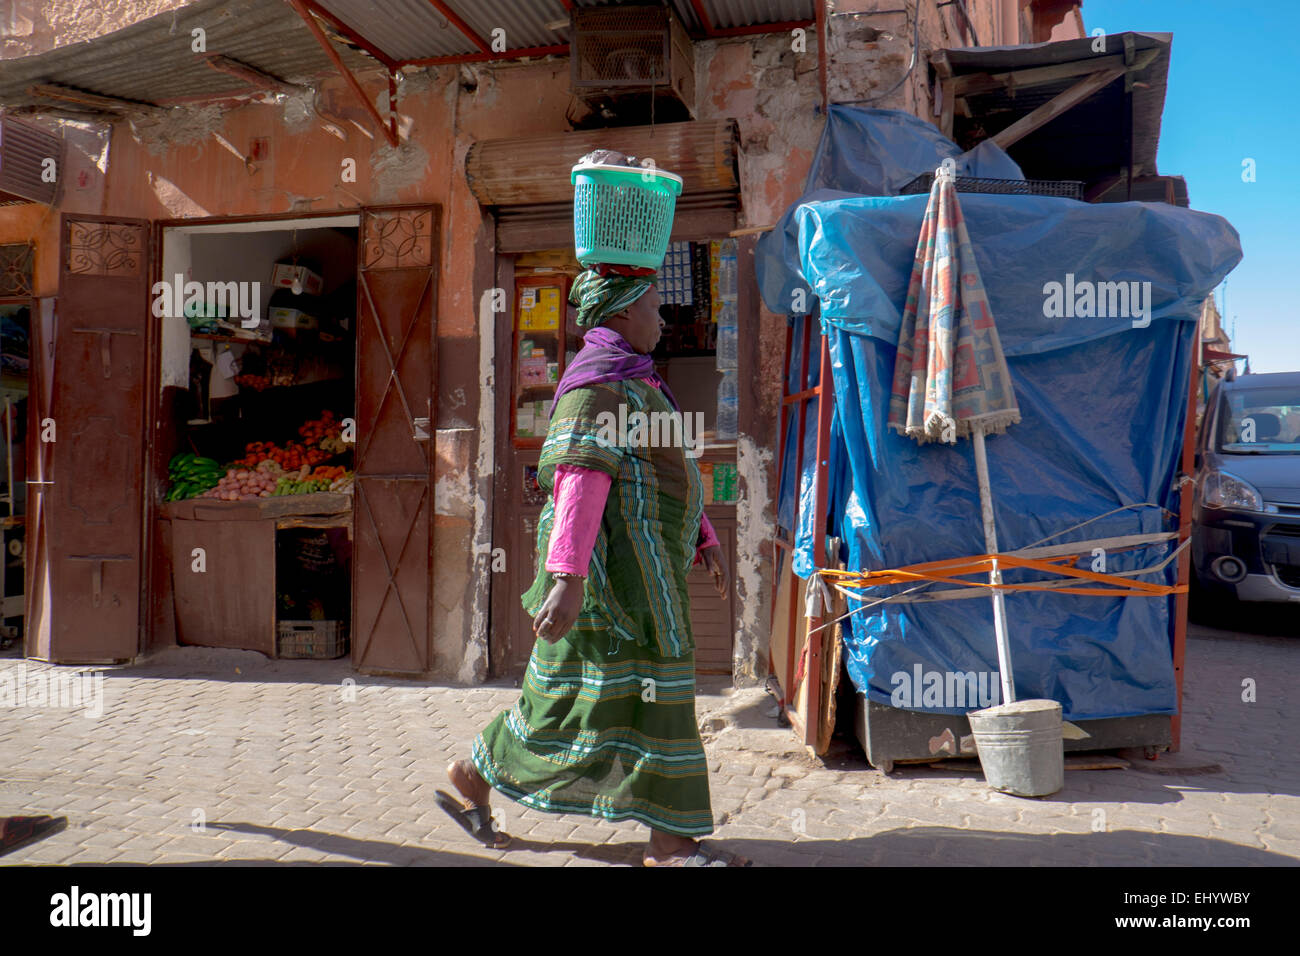 Must see African Traditional Basket - woman-in-traditional-african-dress-carrying-basket-on-her-head-medina-EHYWBY  HD_617145.jpg